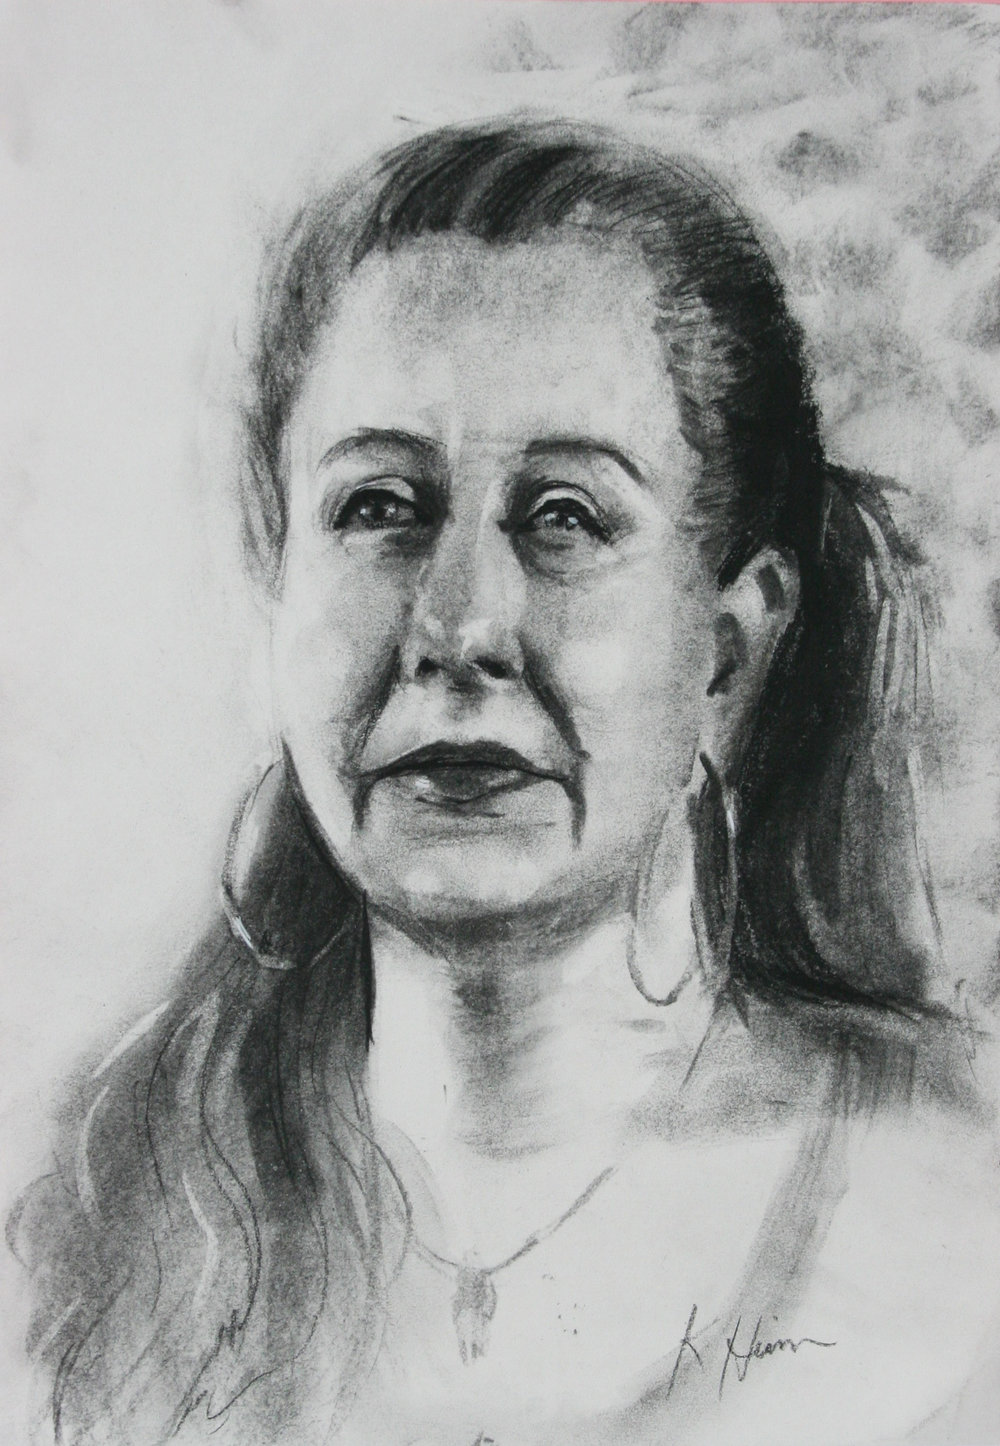 Kathryn Heim did this 2-hour drawing.